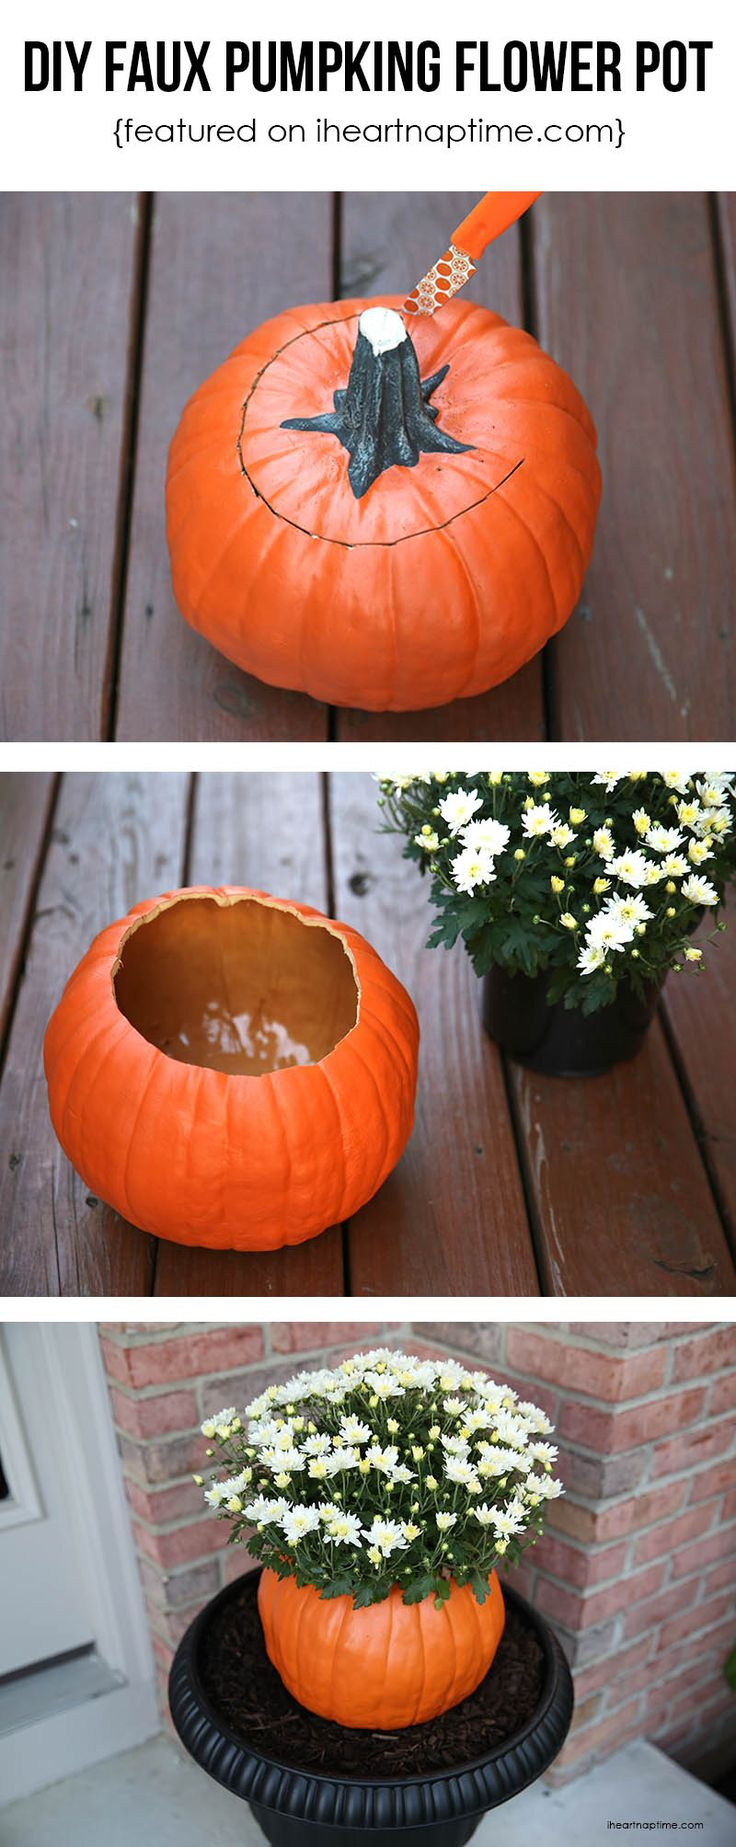 No more squishy pumpkins by Halloween- DIY faux pumpkin flower pot tutorial via I Heart Naptime